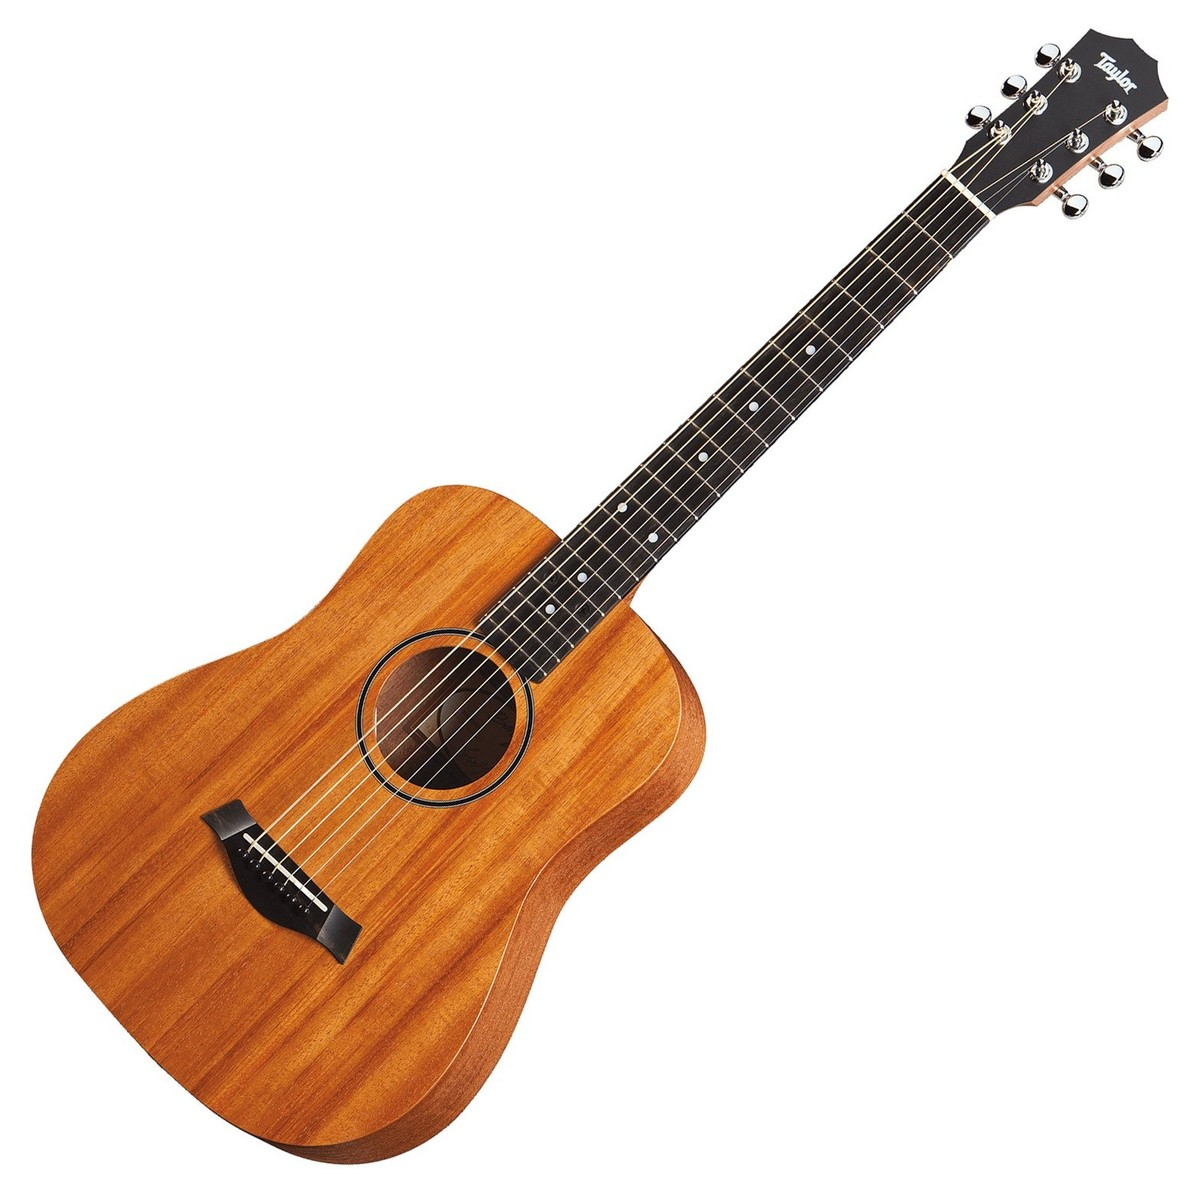 taylor baby bt2 acoustic travel guitar b stock at gear4music. Black Bedroom Furniture Sets. Home Design Ideas